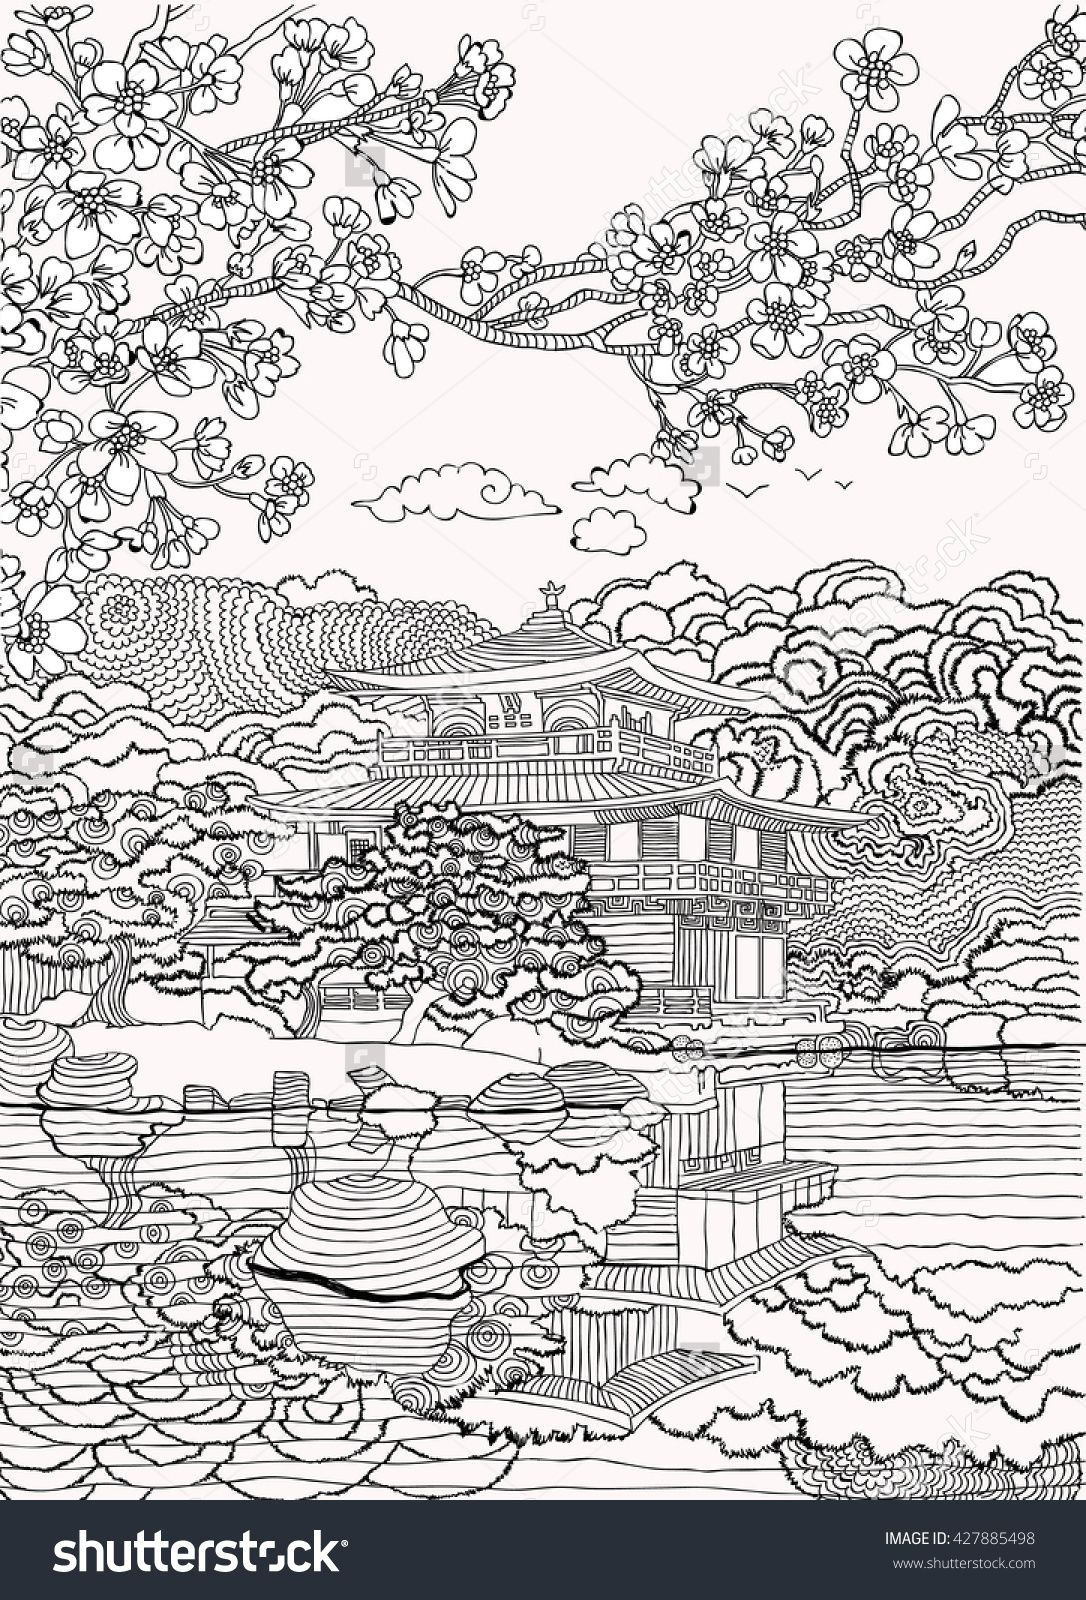 Japan coloring pages shutterstock 427885498